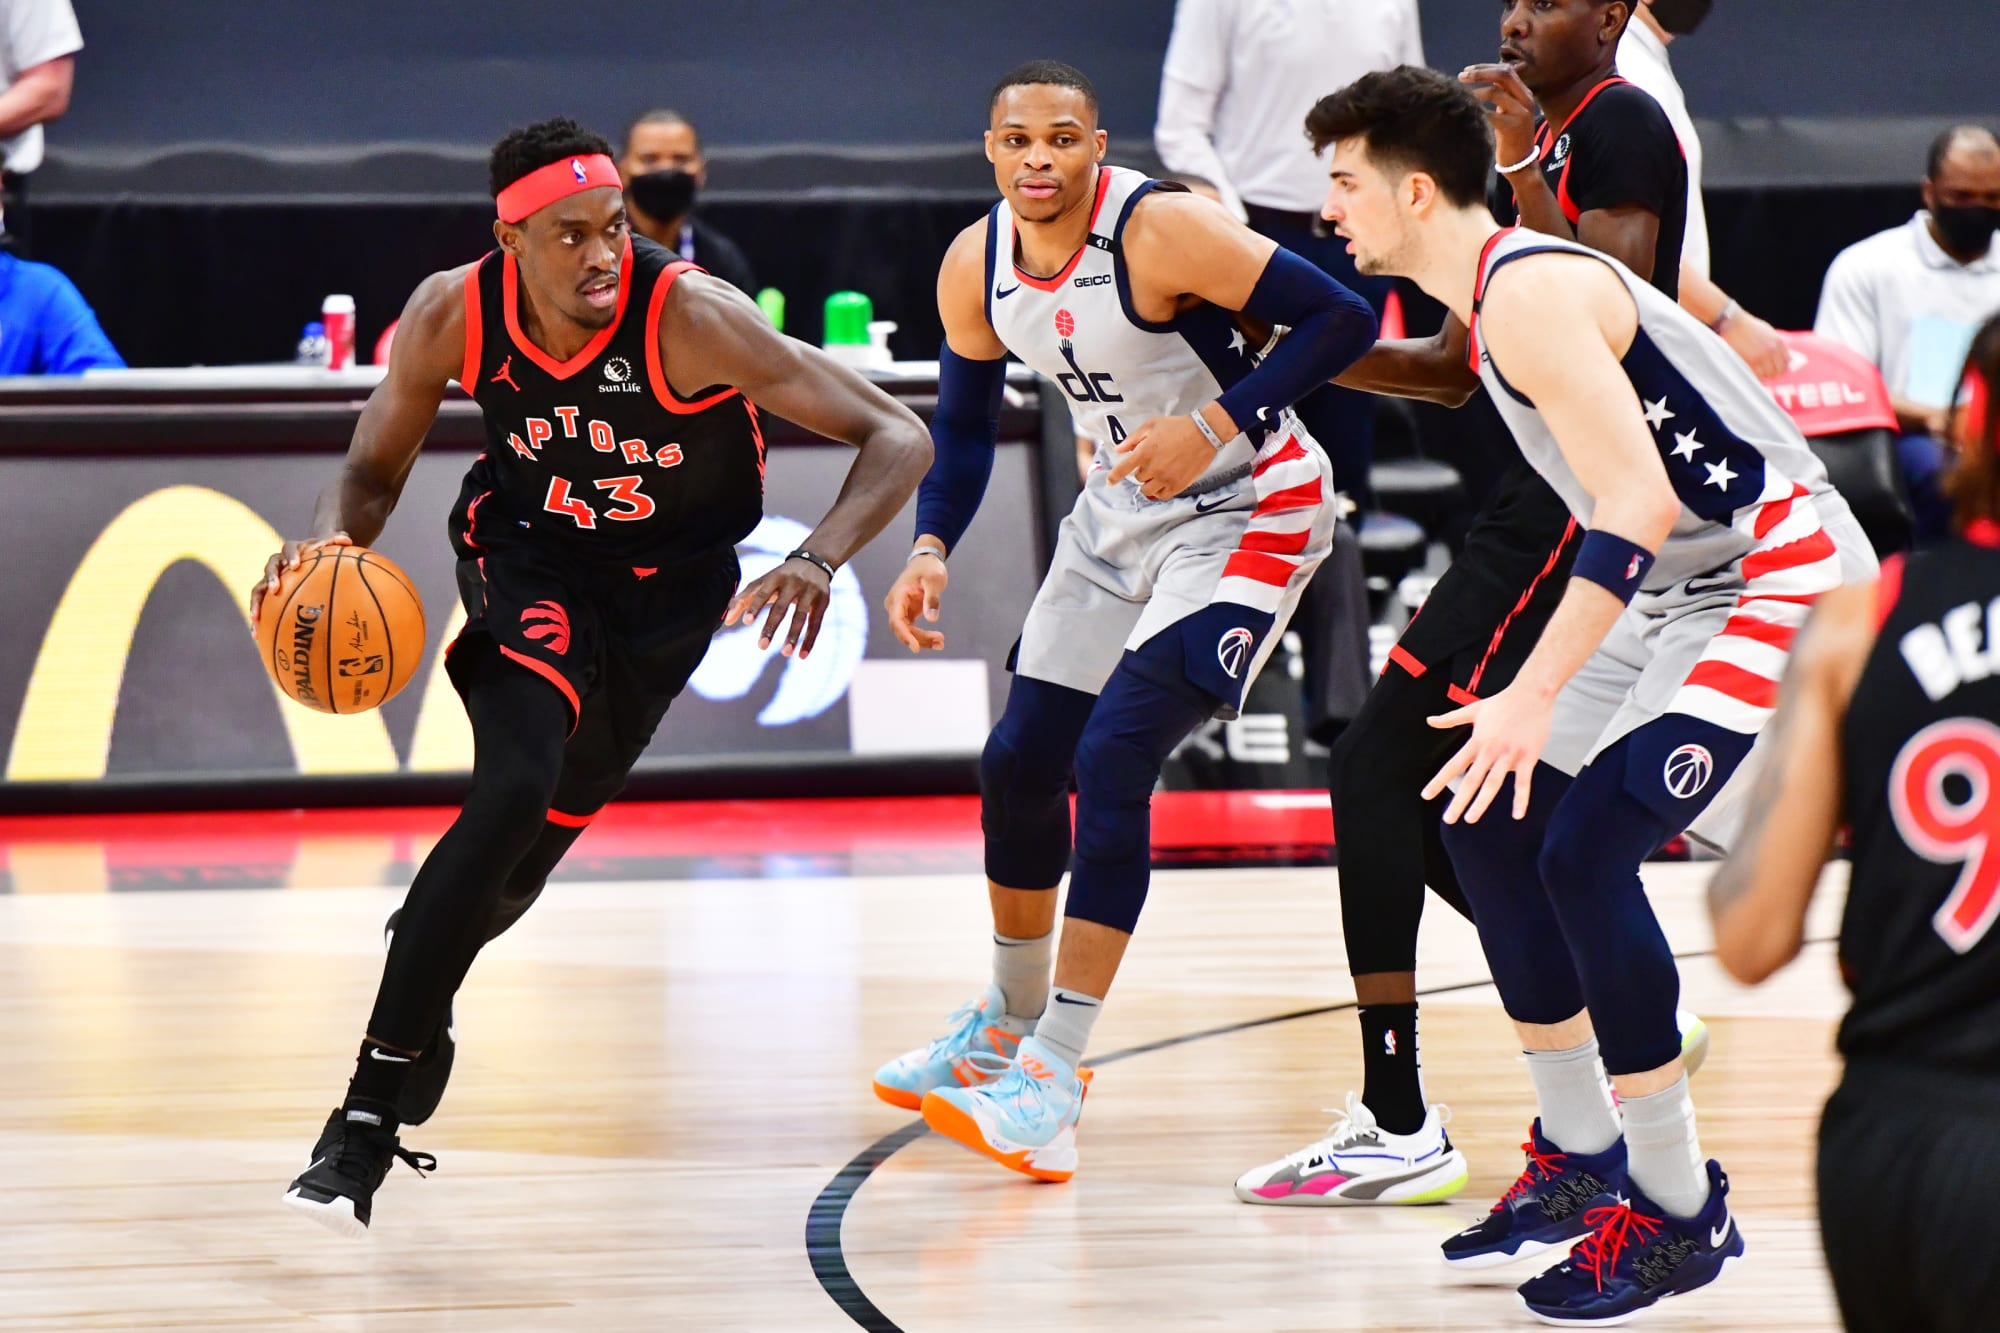 3 reasons the Toronto Raptors are better than the Wizards